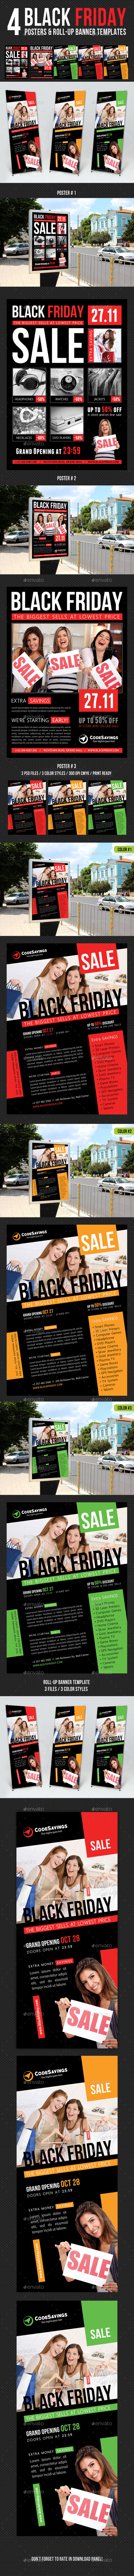 4 Black Friday Posters and Banner Bundle - Signage Print Templates